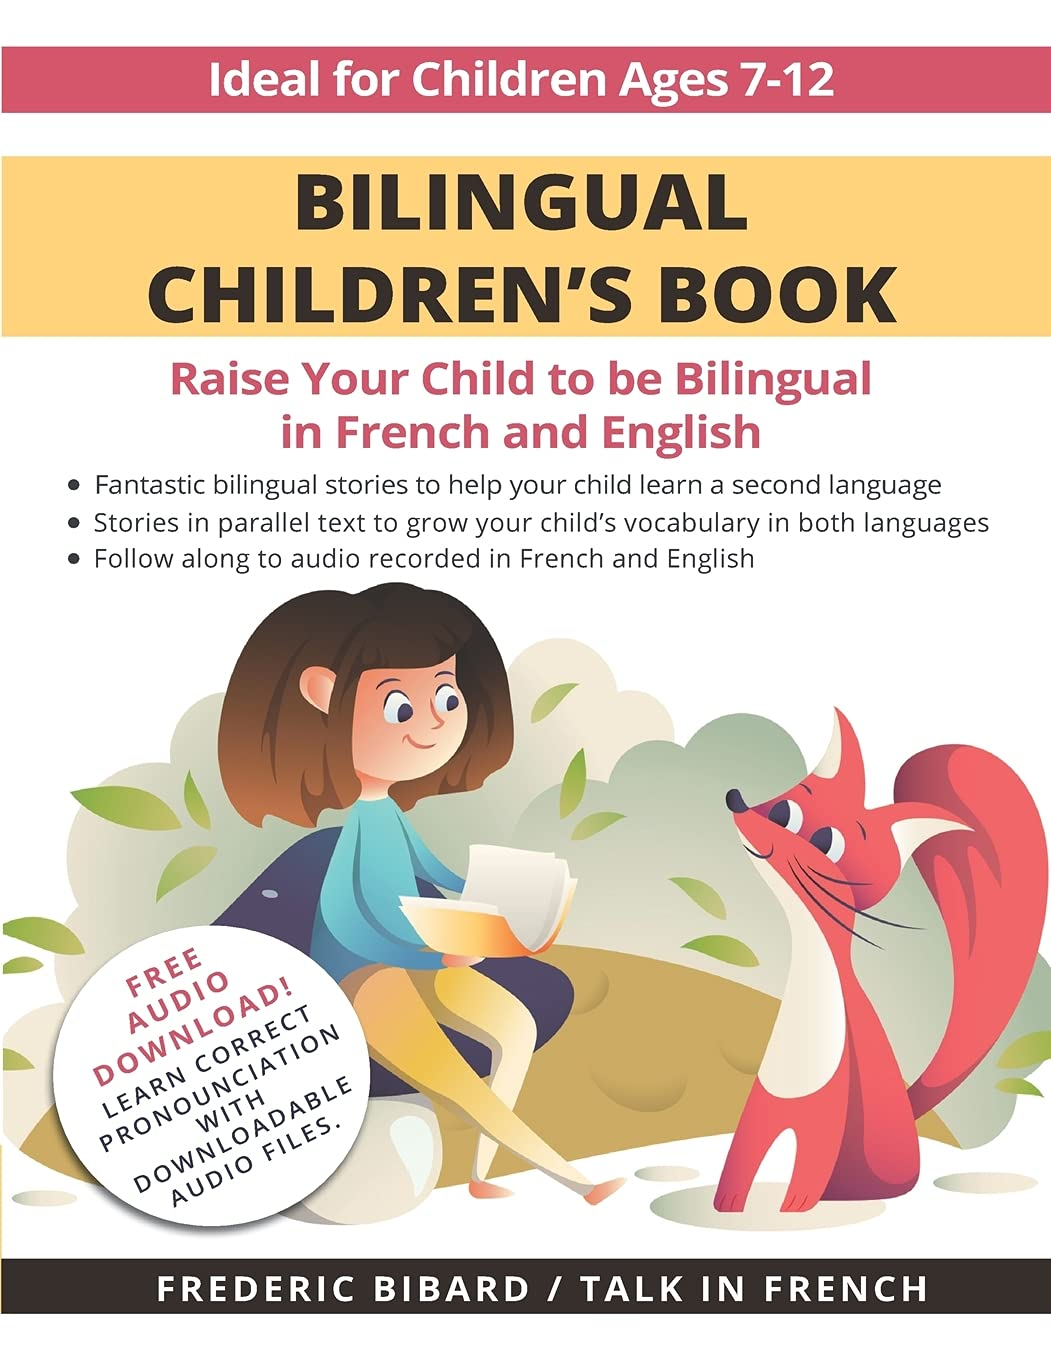 Bilingual Children's Book: Raise your child to be bilingual in French and English + Audio Download. Ideal for kids ages 7-12